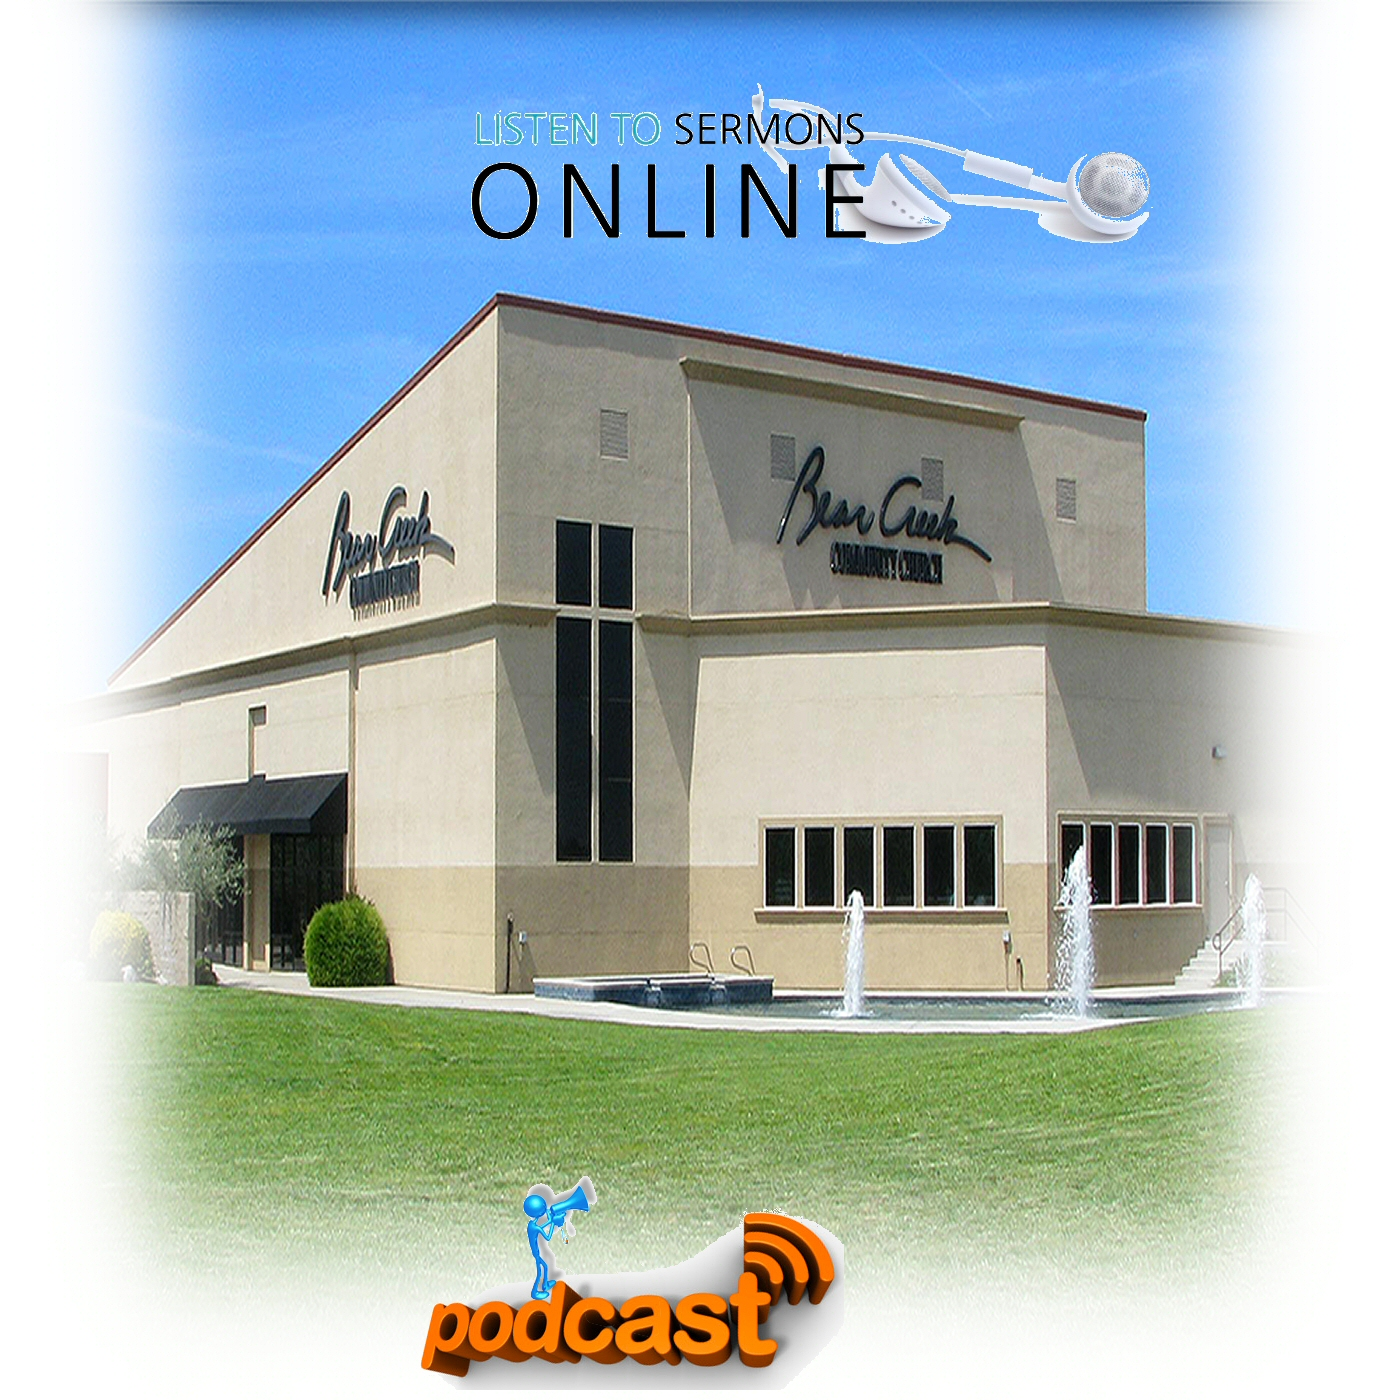 Bear Creek Church iTunes